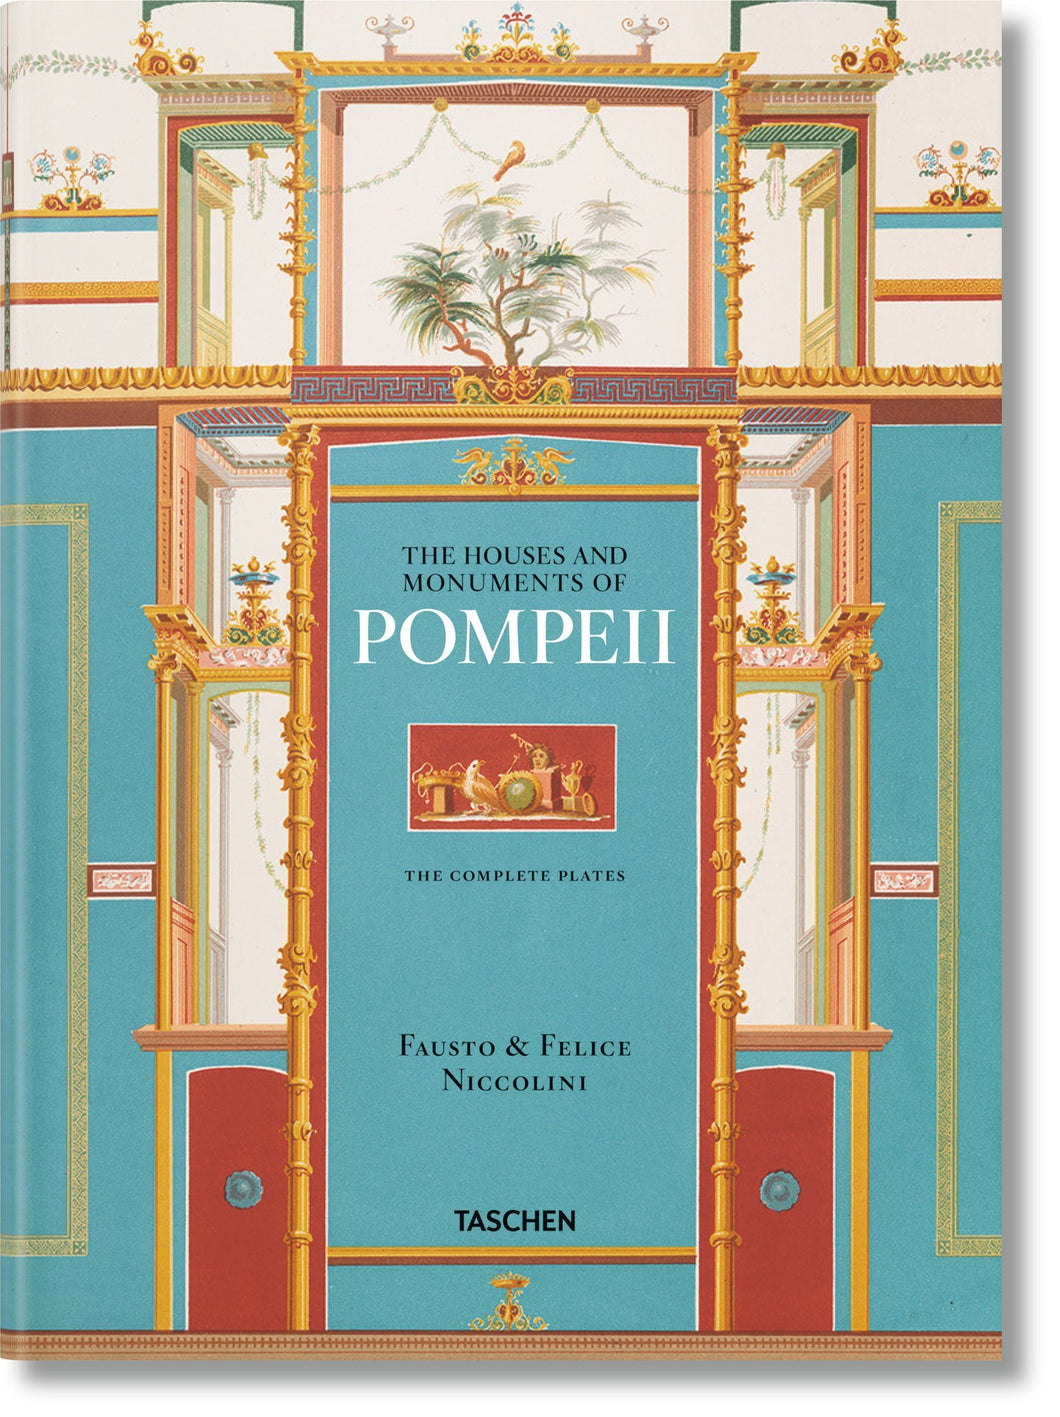 Fausto & Felice Niccolini. The Houses and Monuments of Pompeii